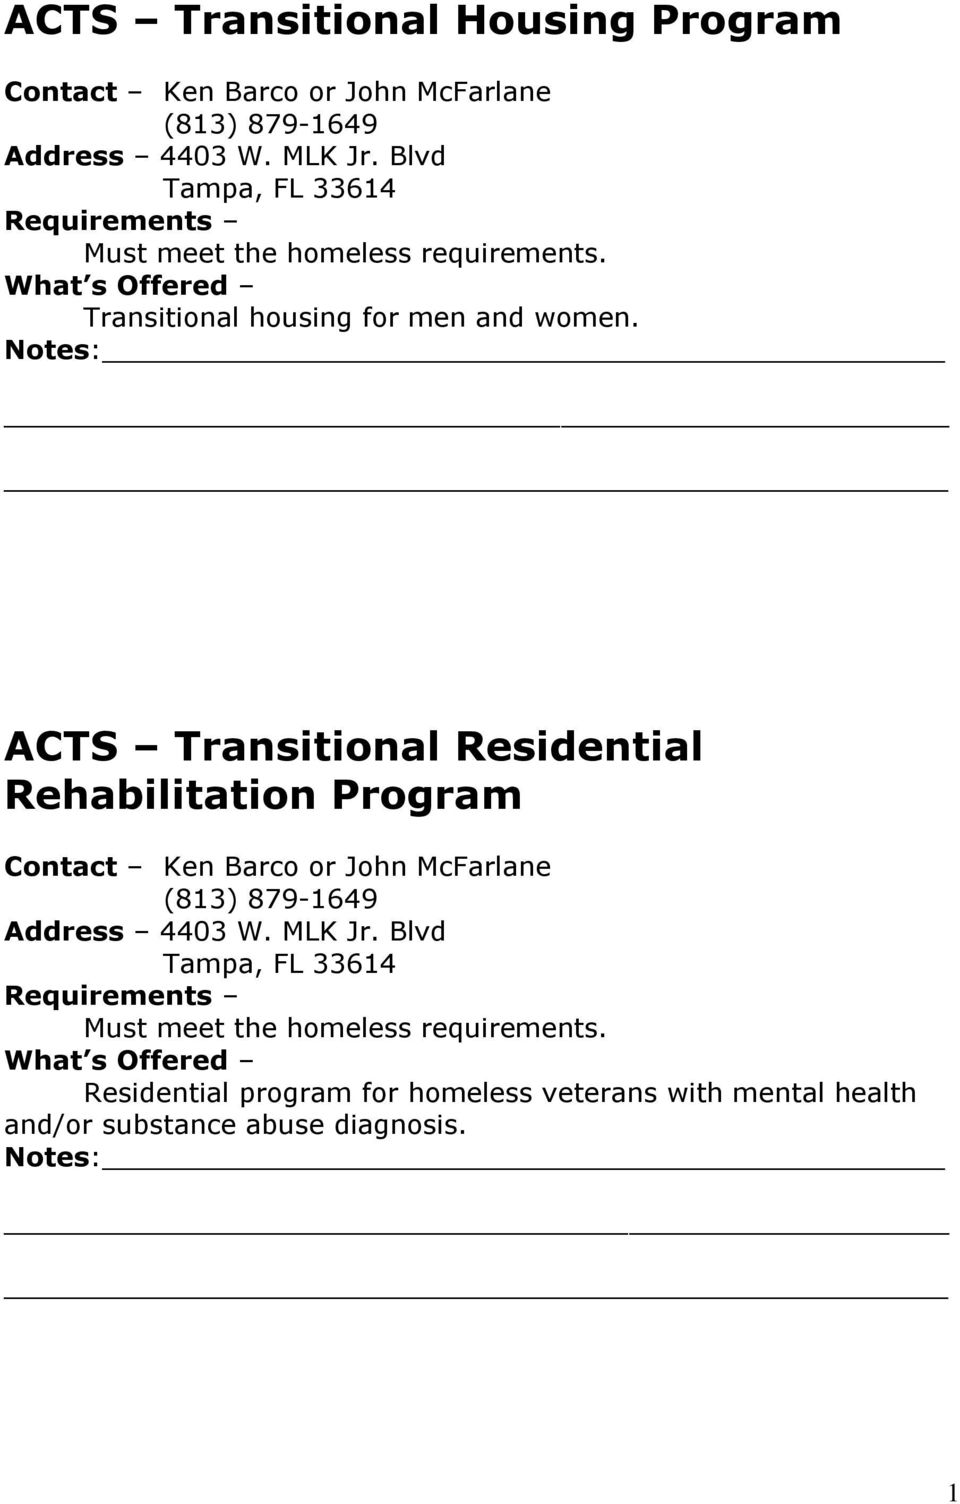 ACTS Transitional Residential Rehabilitation Program Contact Ken Barco or John McFarlane (813) 879-1649